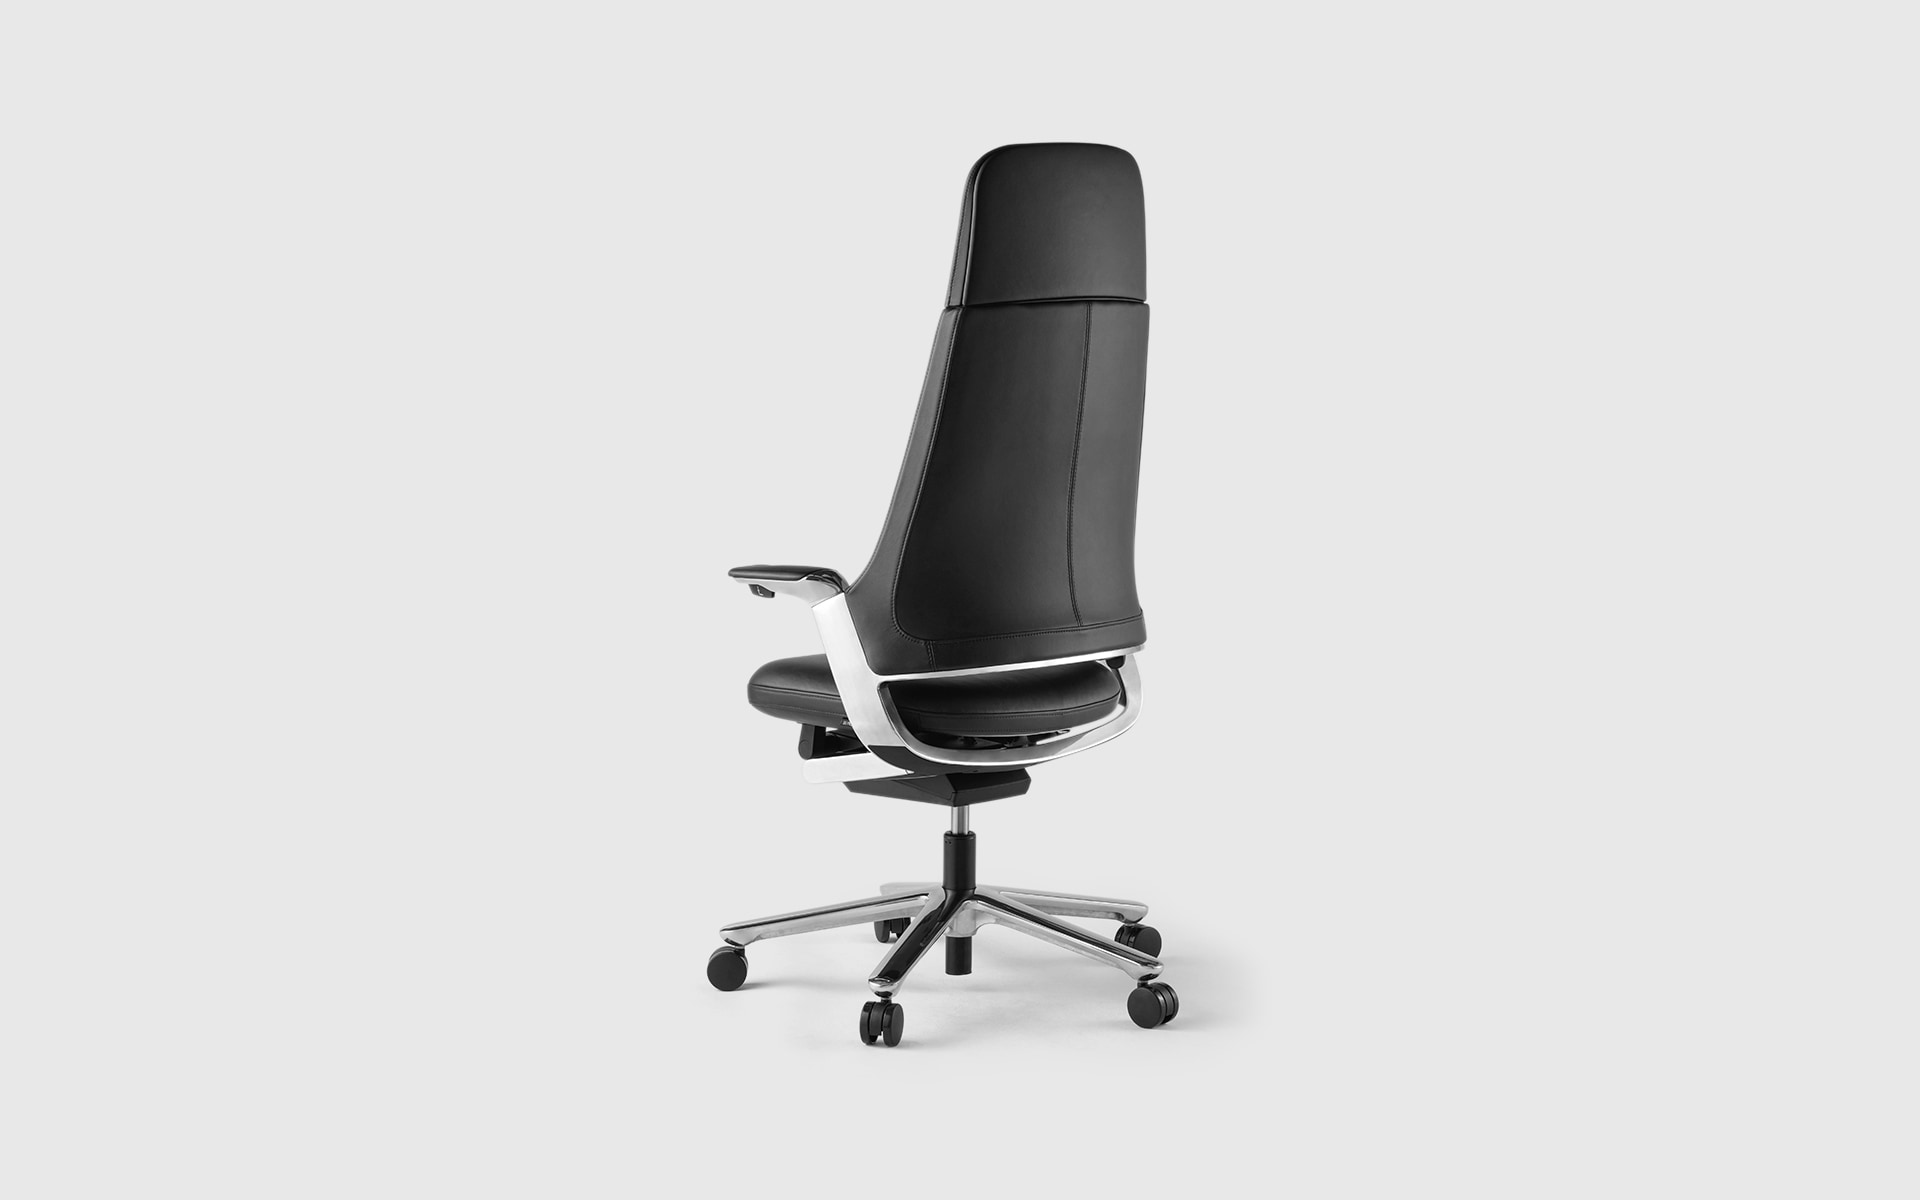 The ITOKI Leonis executive chair by ITO Design in black leather